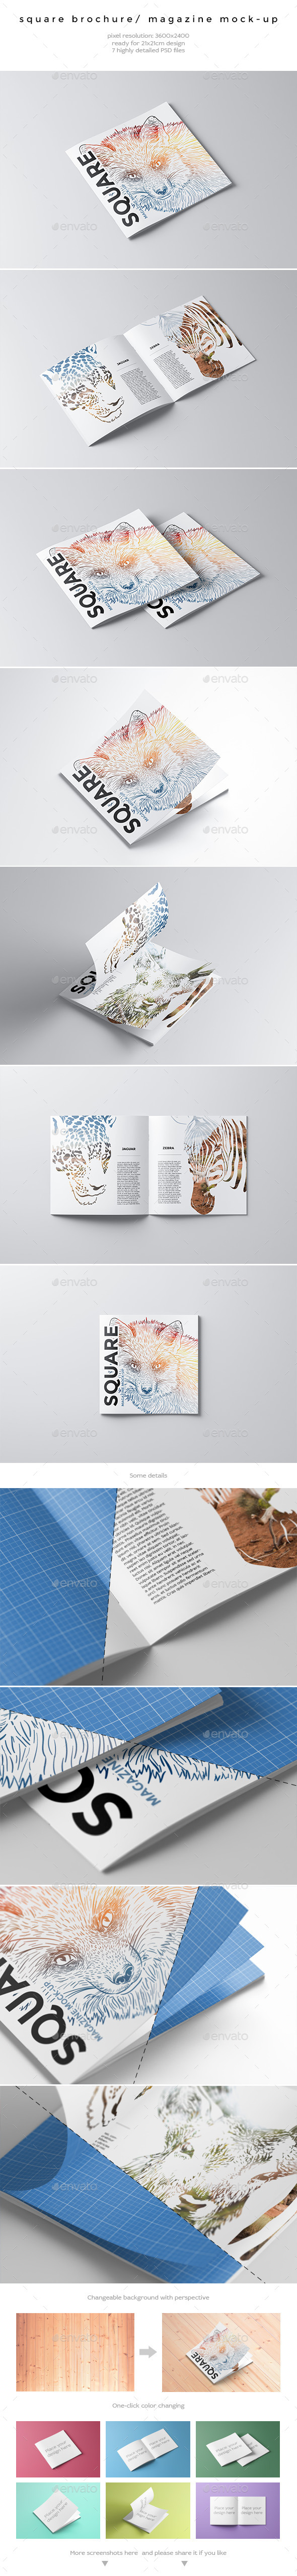 GraphicRiver Square Brochure Magazine Mock-Up 10716425